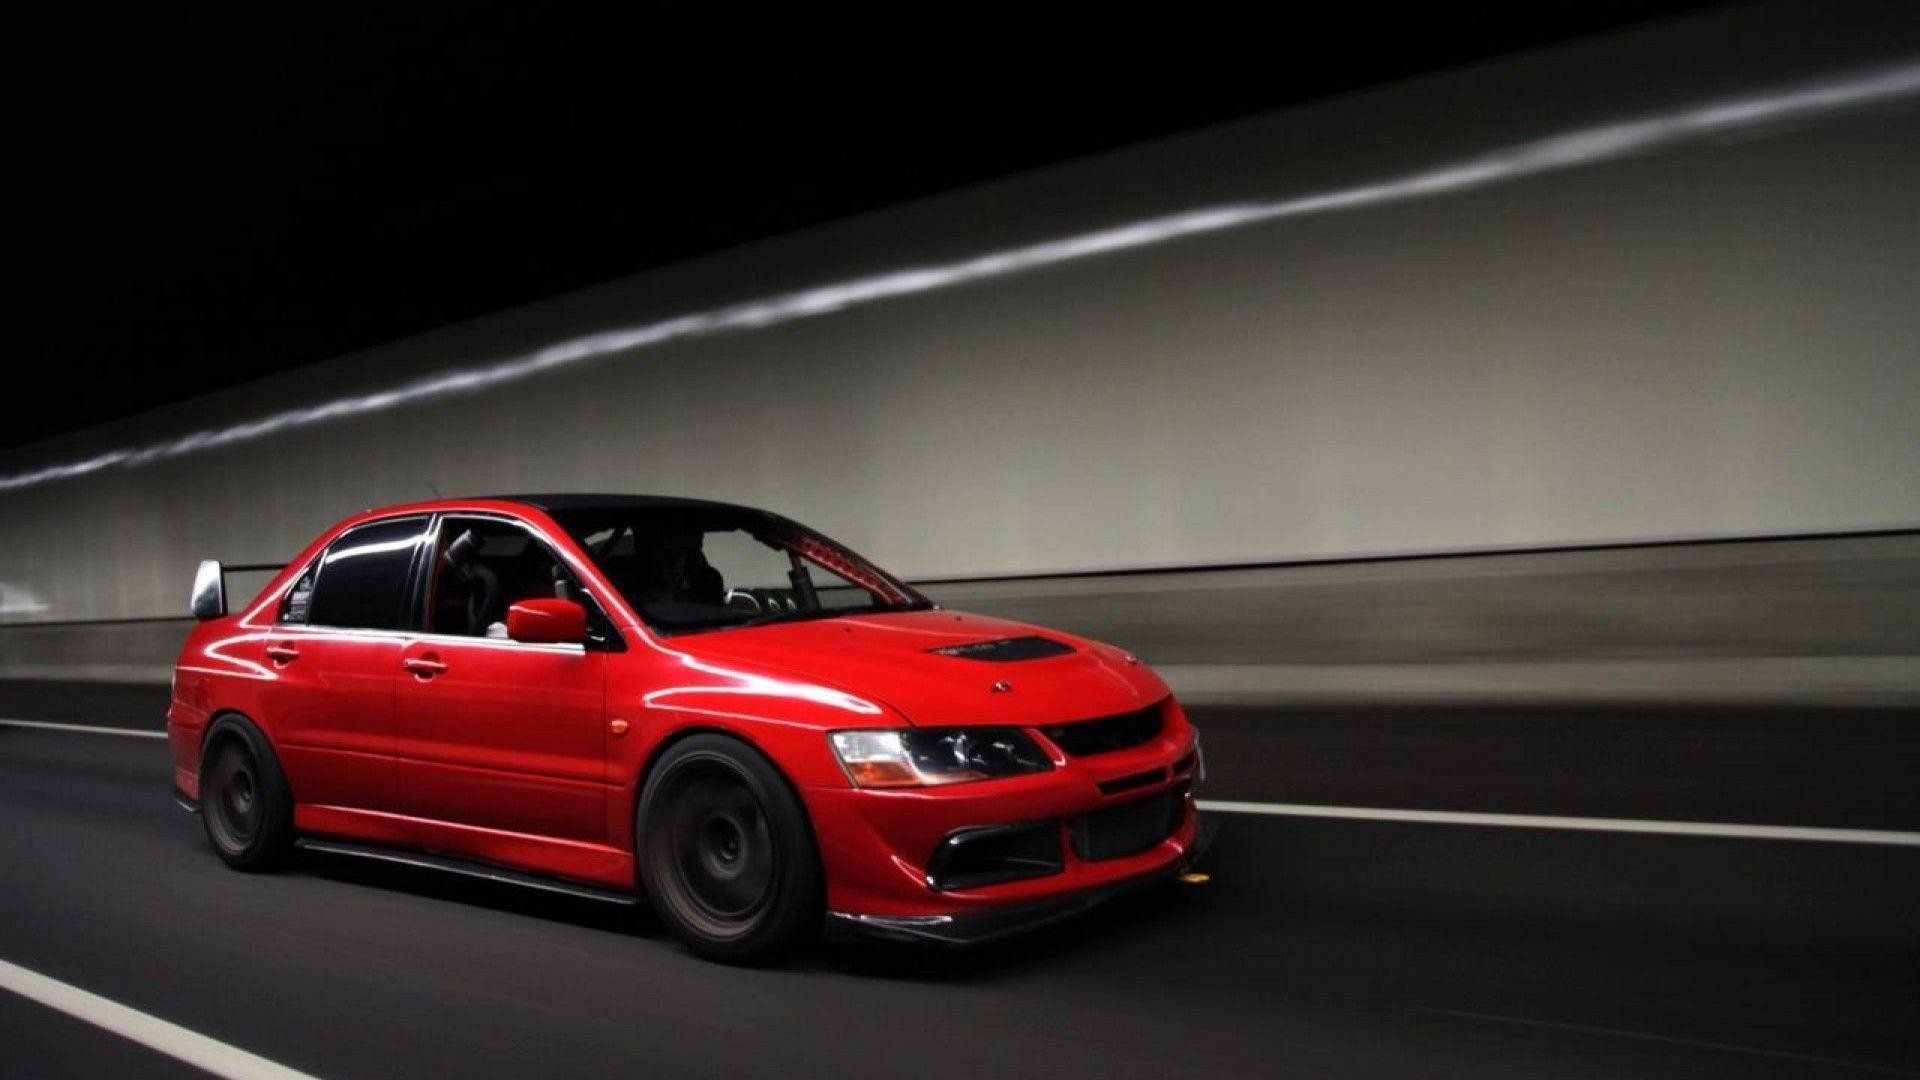 Evo 9 Wallpaper Hd 72 Images